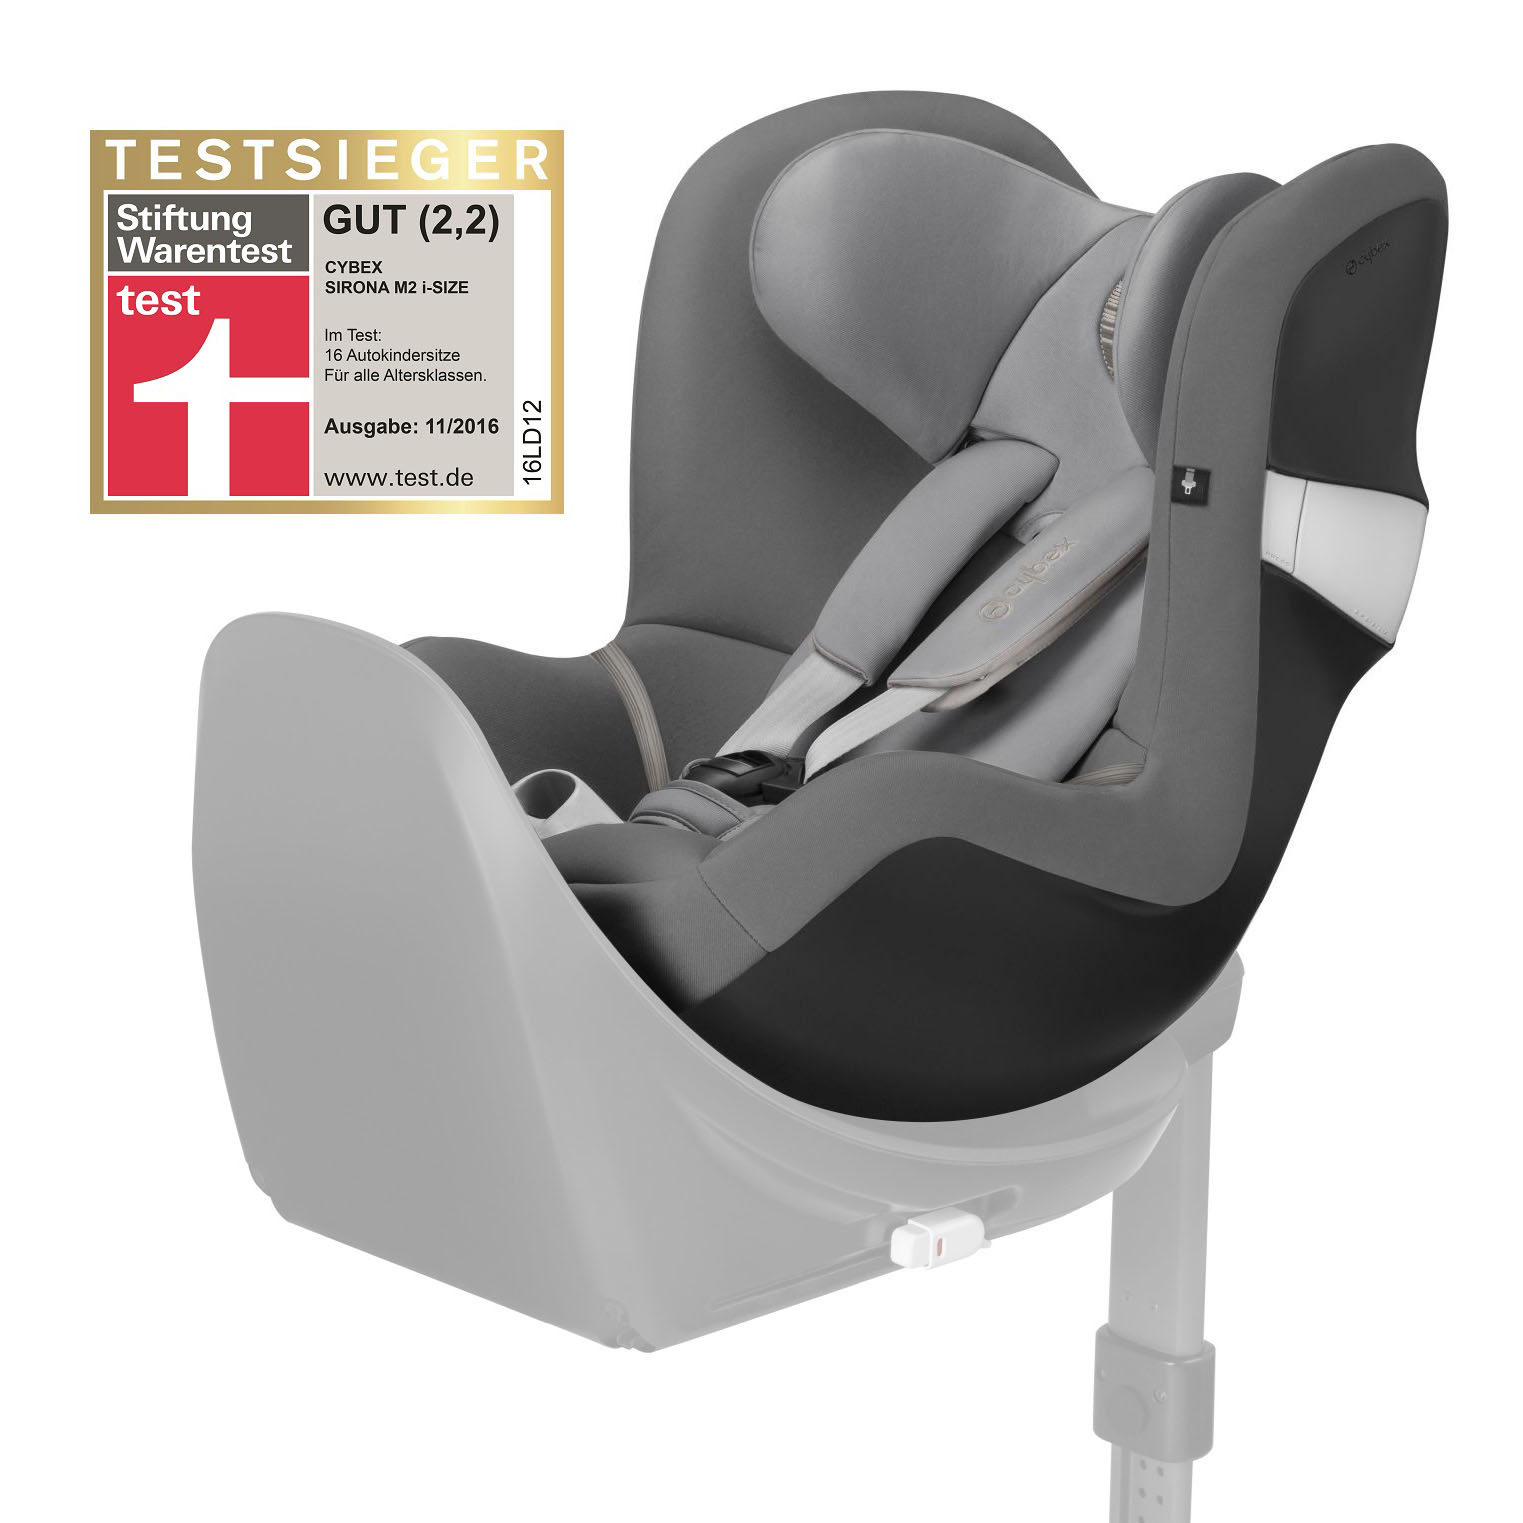 cybex chikd car seat sirona m2 i size 2018 manhattan grey. Black Bedroom Furniture Sets. Home Design Ideas